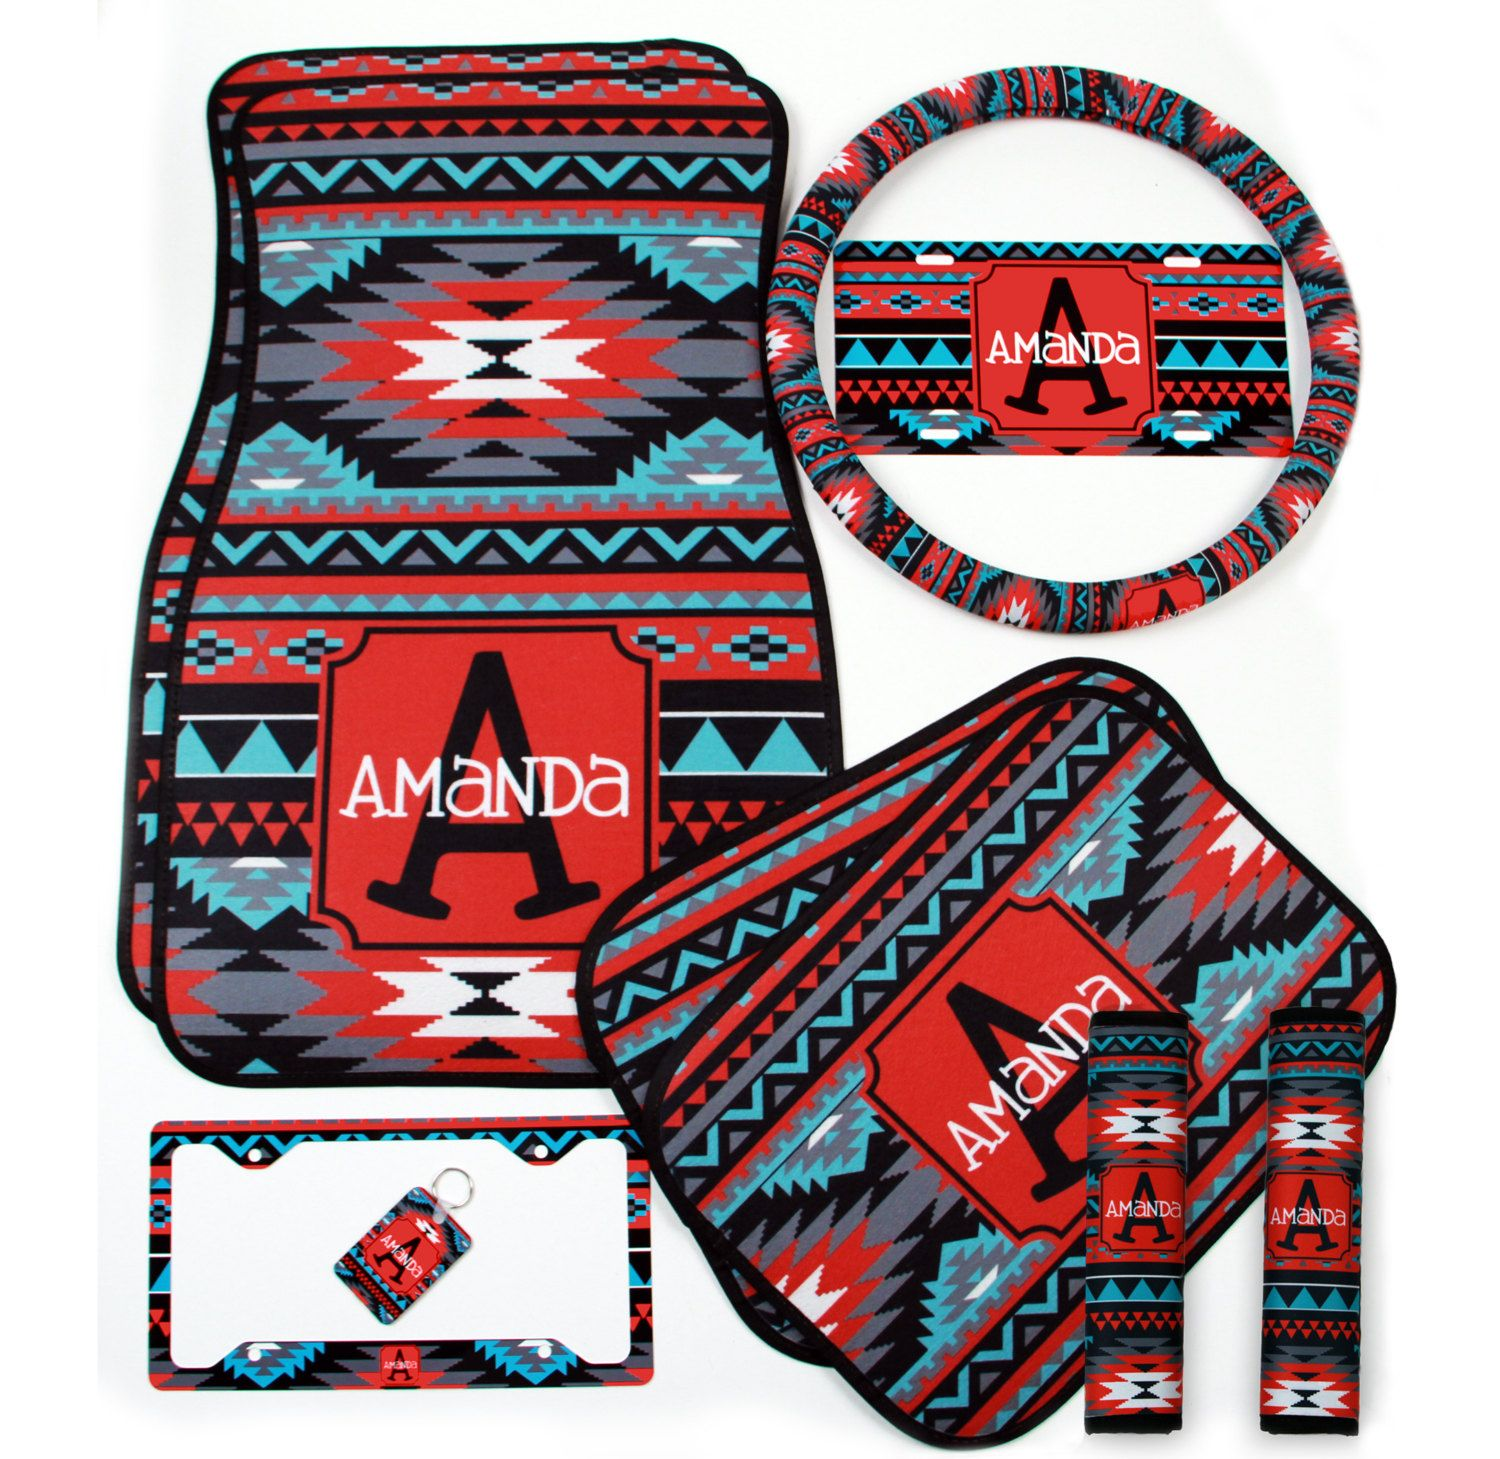 Custom Aztec Steering Wheel Cover Padded Insulated Tribal Car Accessories Seat Belt Covers License Plate Frames